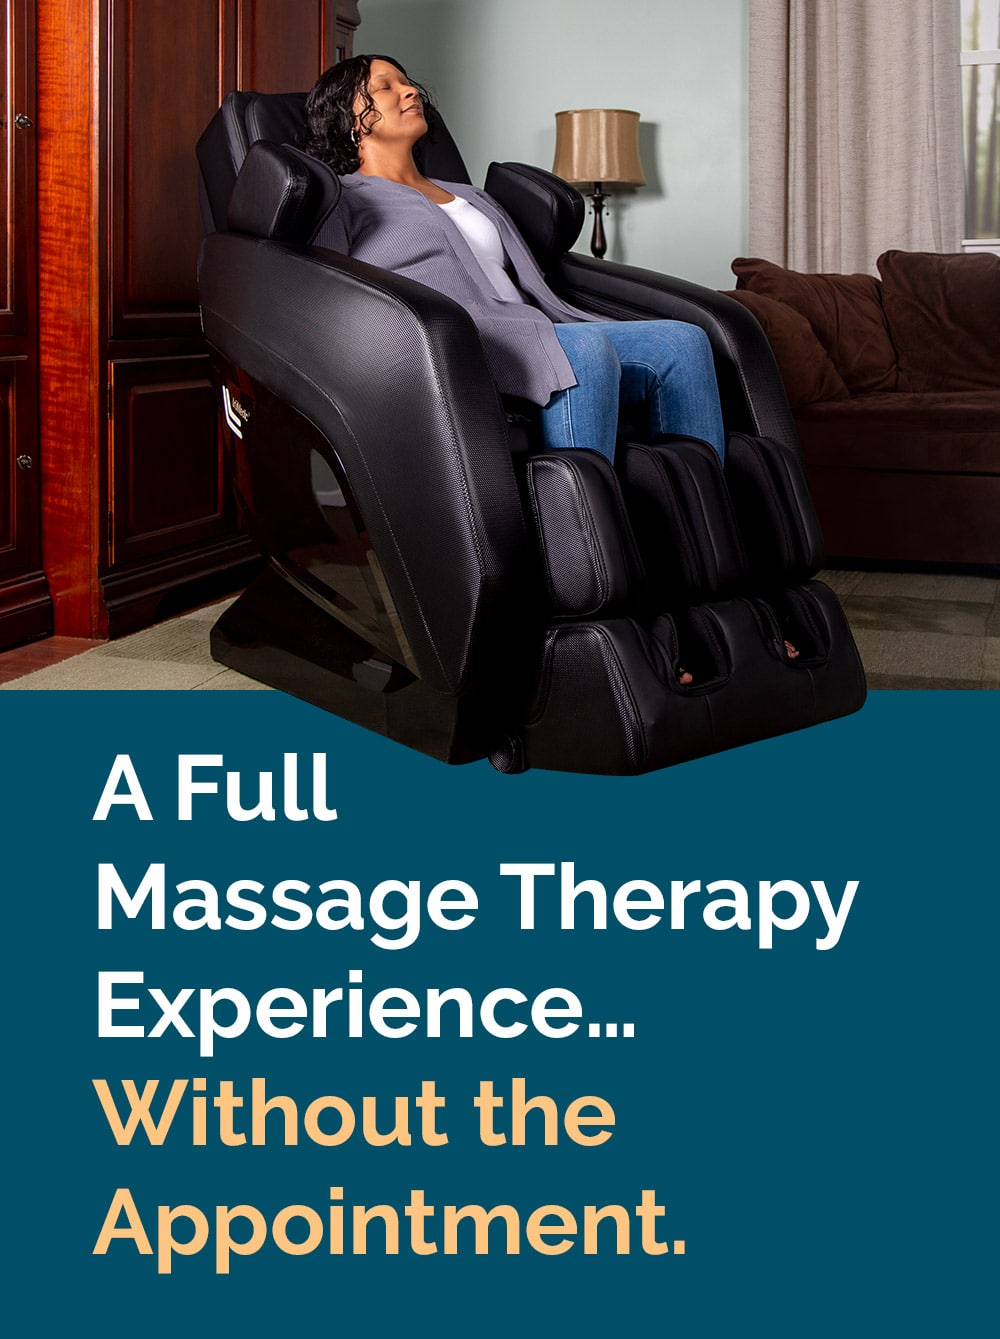 woman relaxing in a MC 1000 massage chair